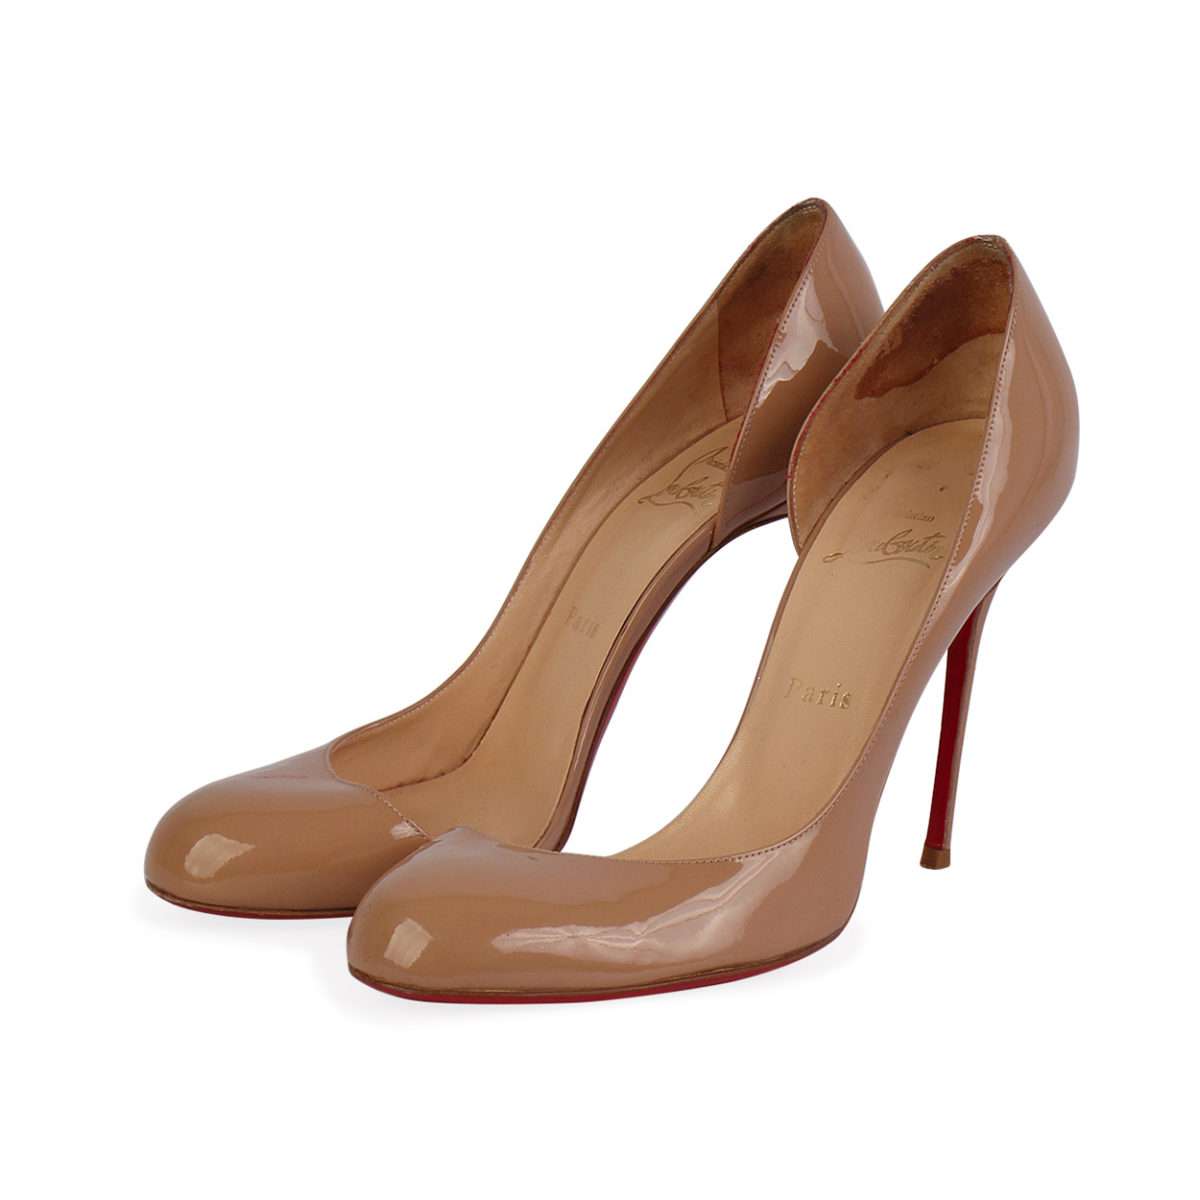 buy popular 4b834 af7ac CHRISTIAN LOUBOUTIN Patent Leather Helmour 110 Pumps Nude - S: 39.5 (6)